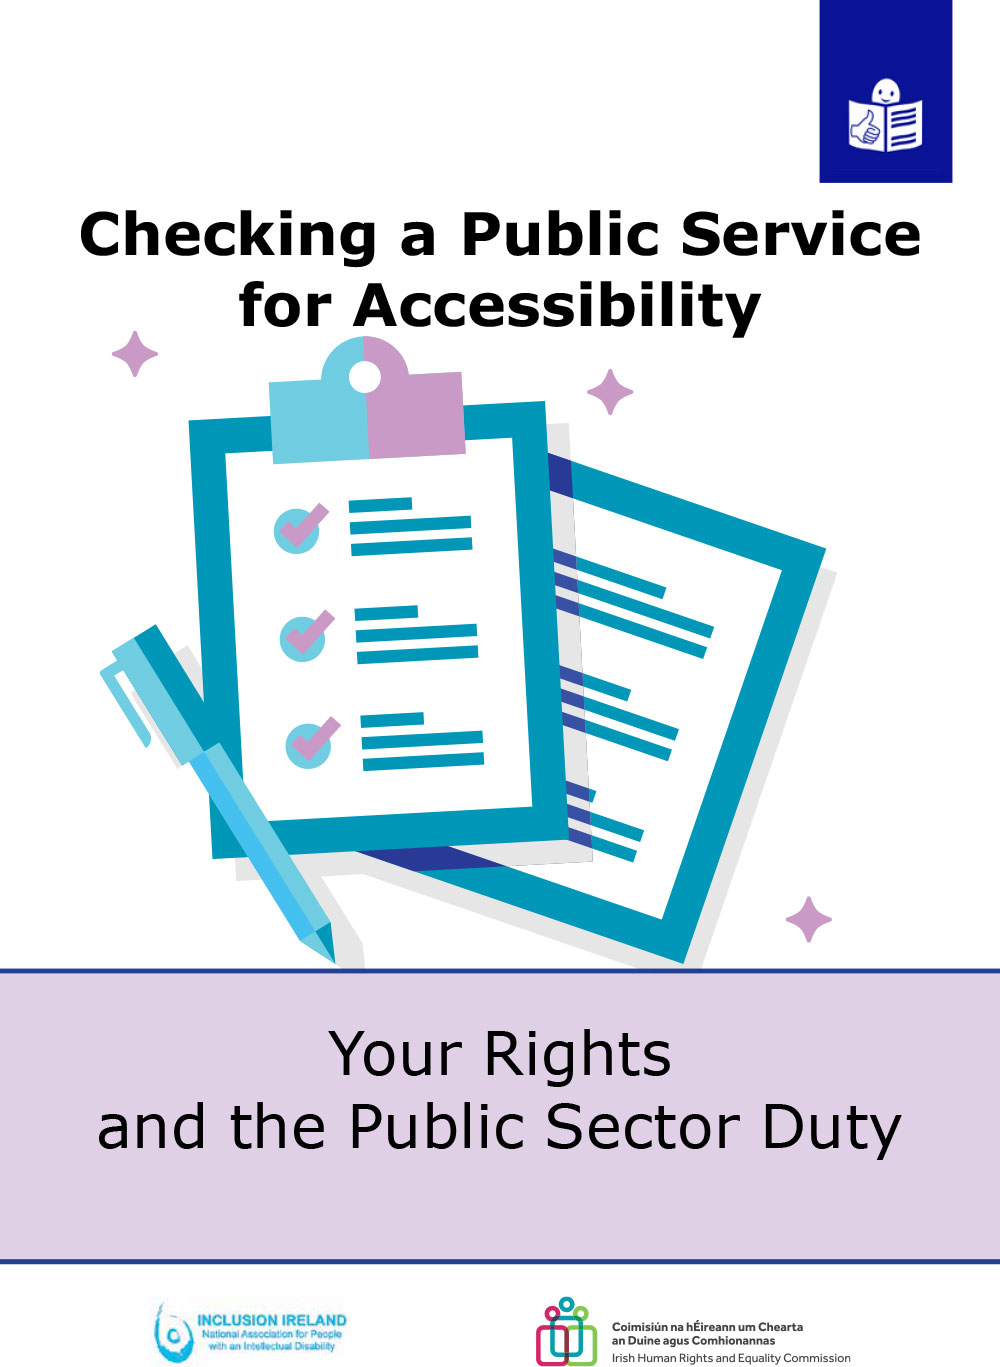 Your Rights and the Public Sector Duty – Checking a Public Service for Accessibility Questionnaire